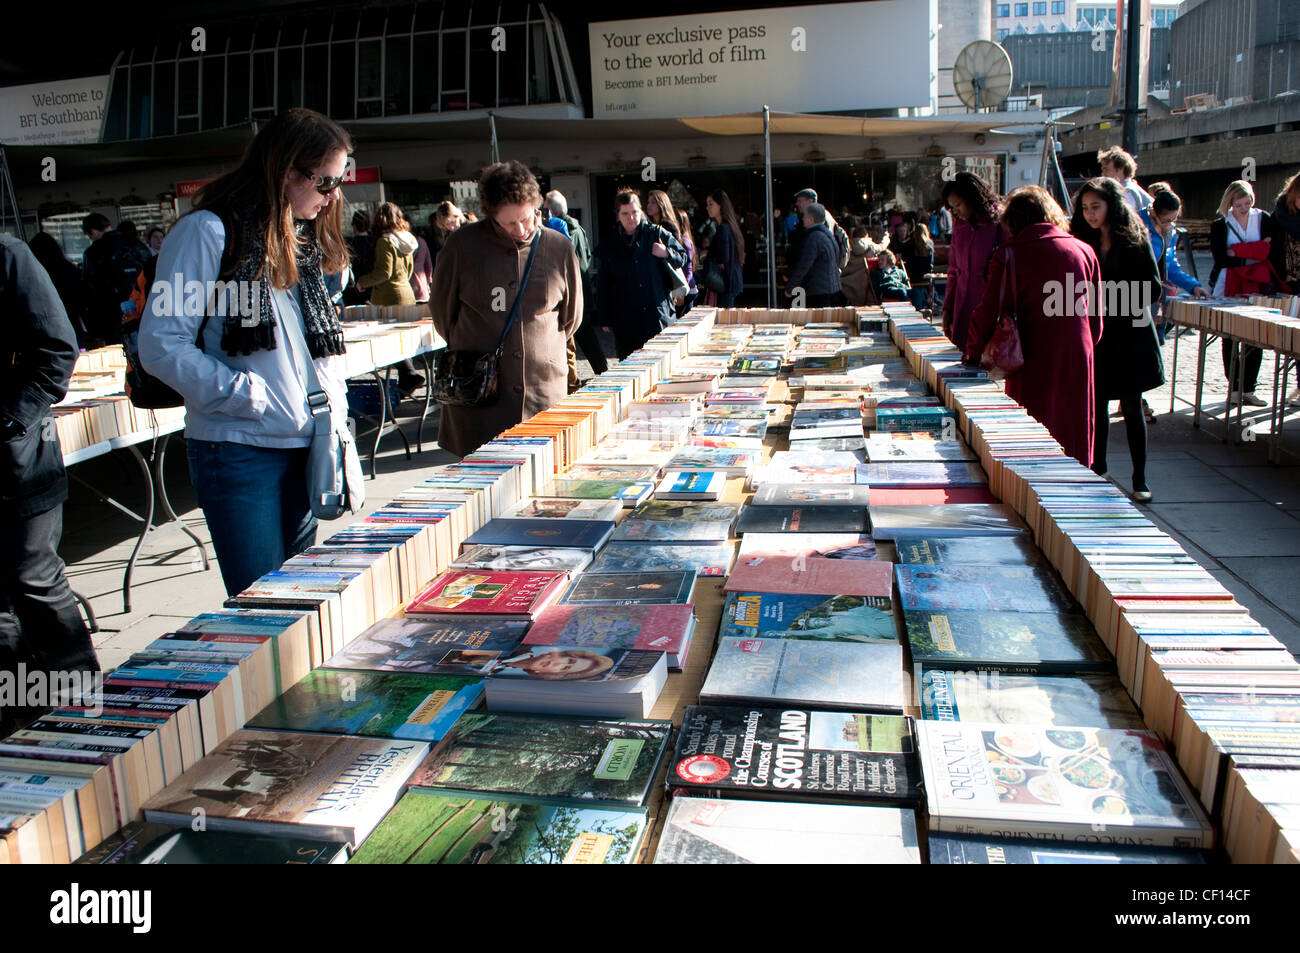 People browsing books at second-hand bookstalls under the Waterloo Bridge, , South Bank, London, UK - Stock Image